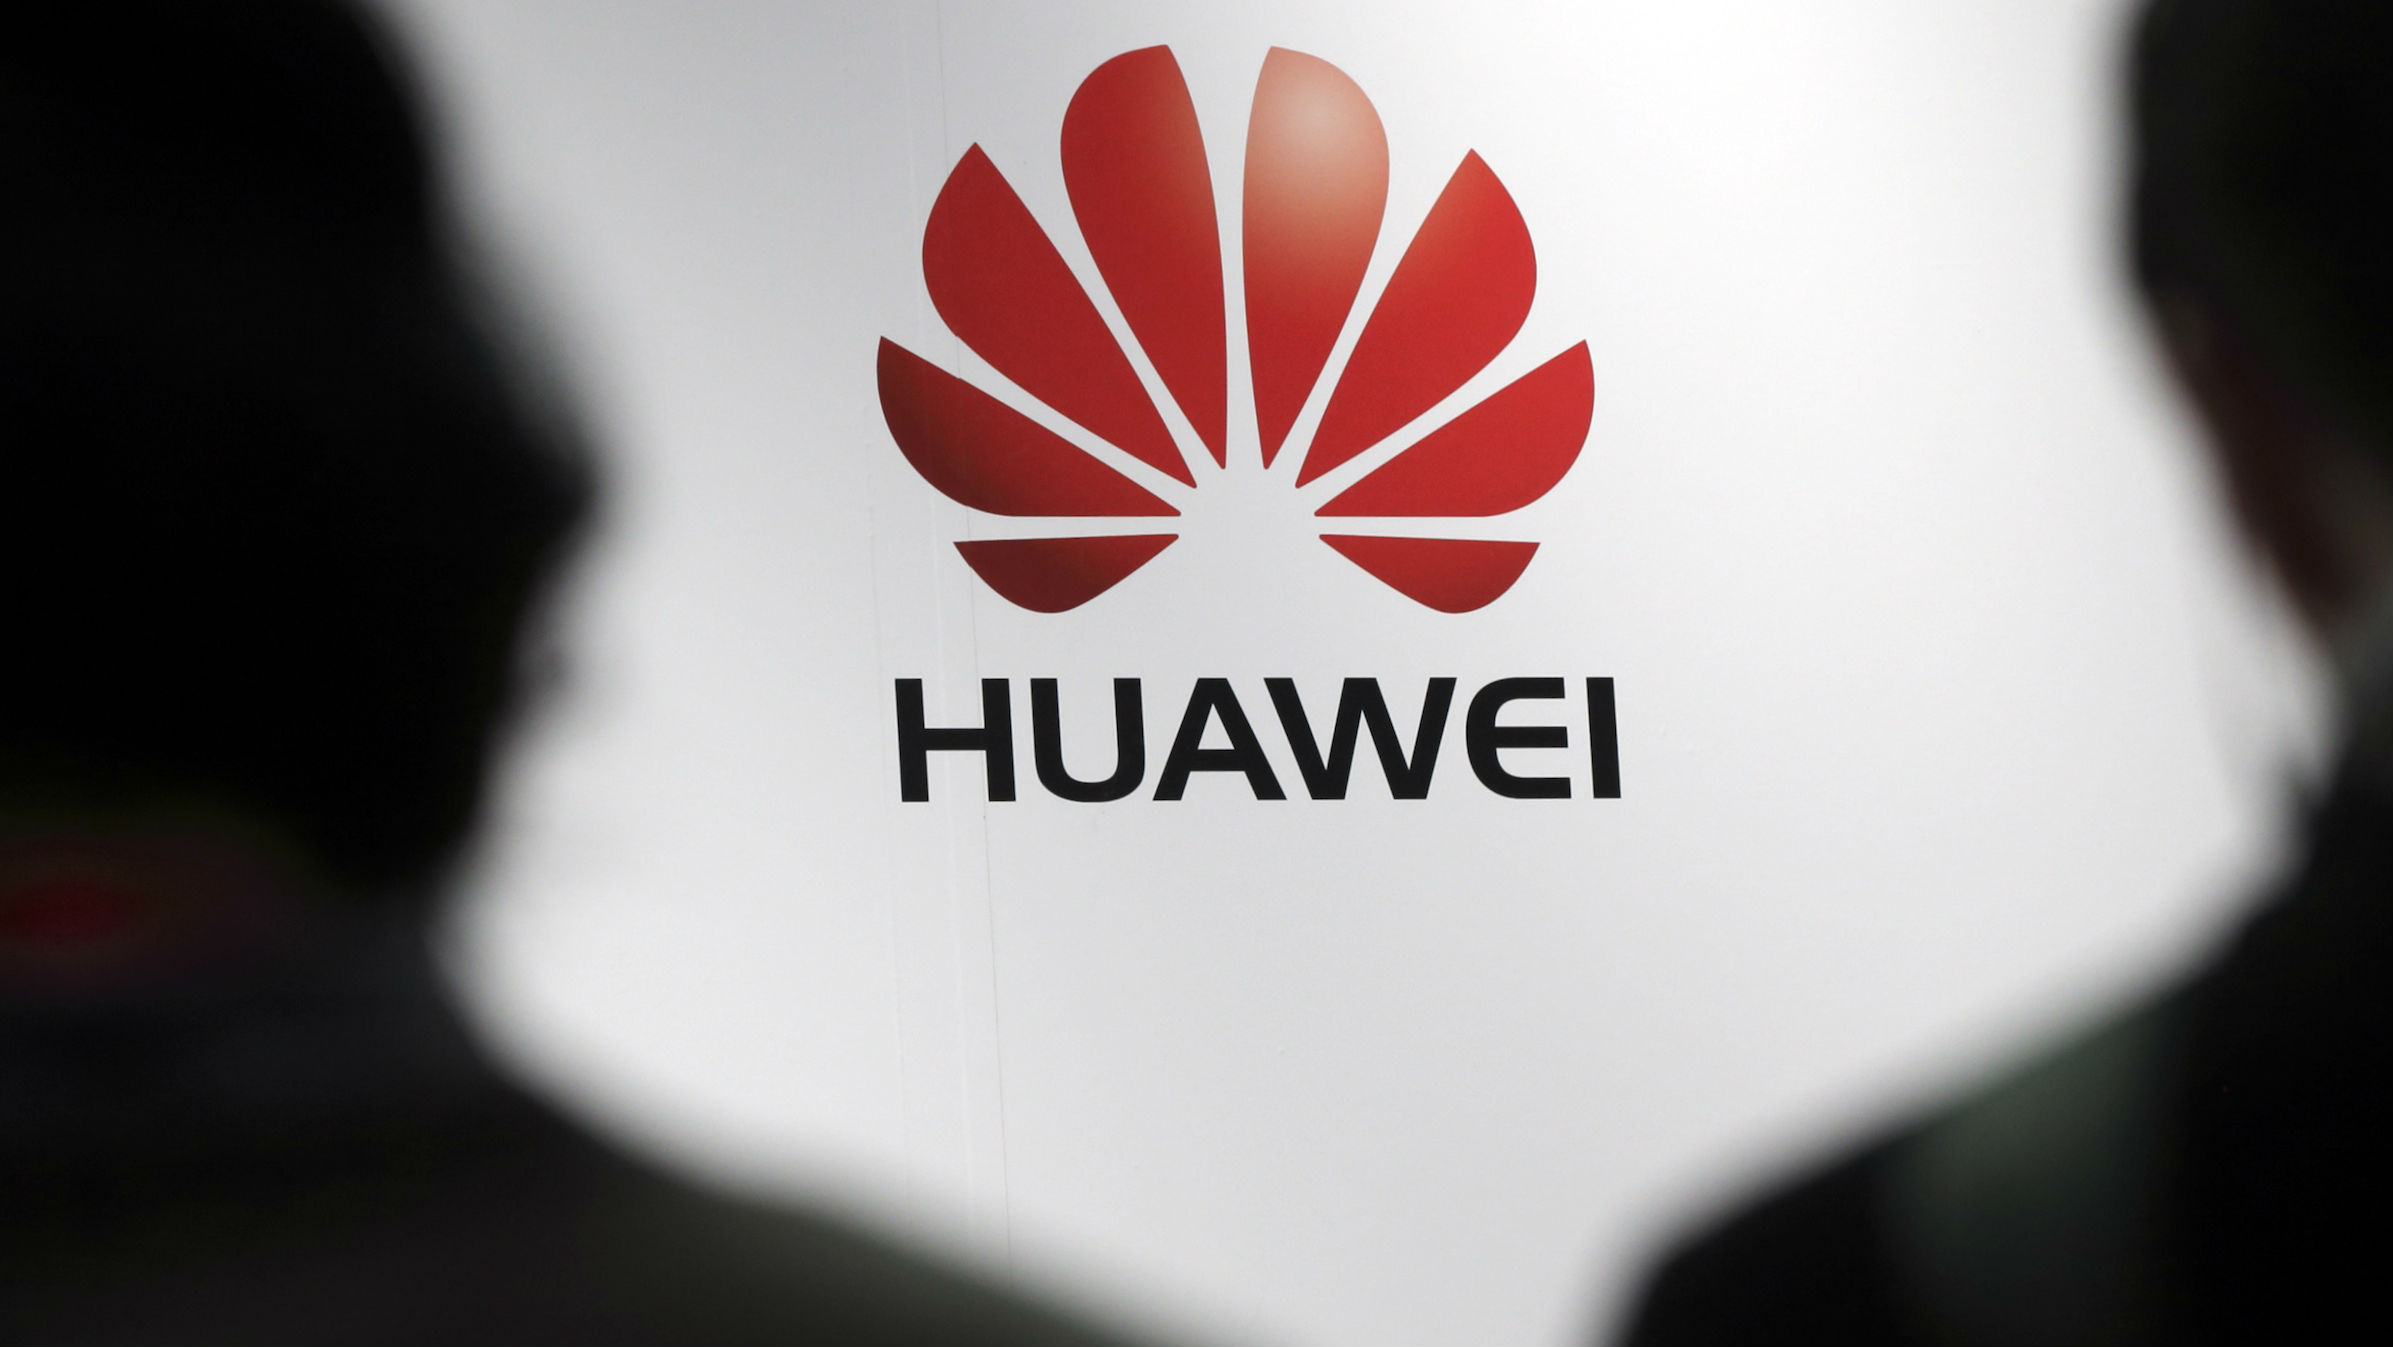 Huawei, started by a former People's Liberation Army officer, is working to change its image.